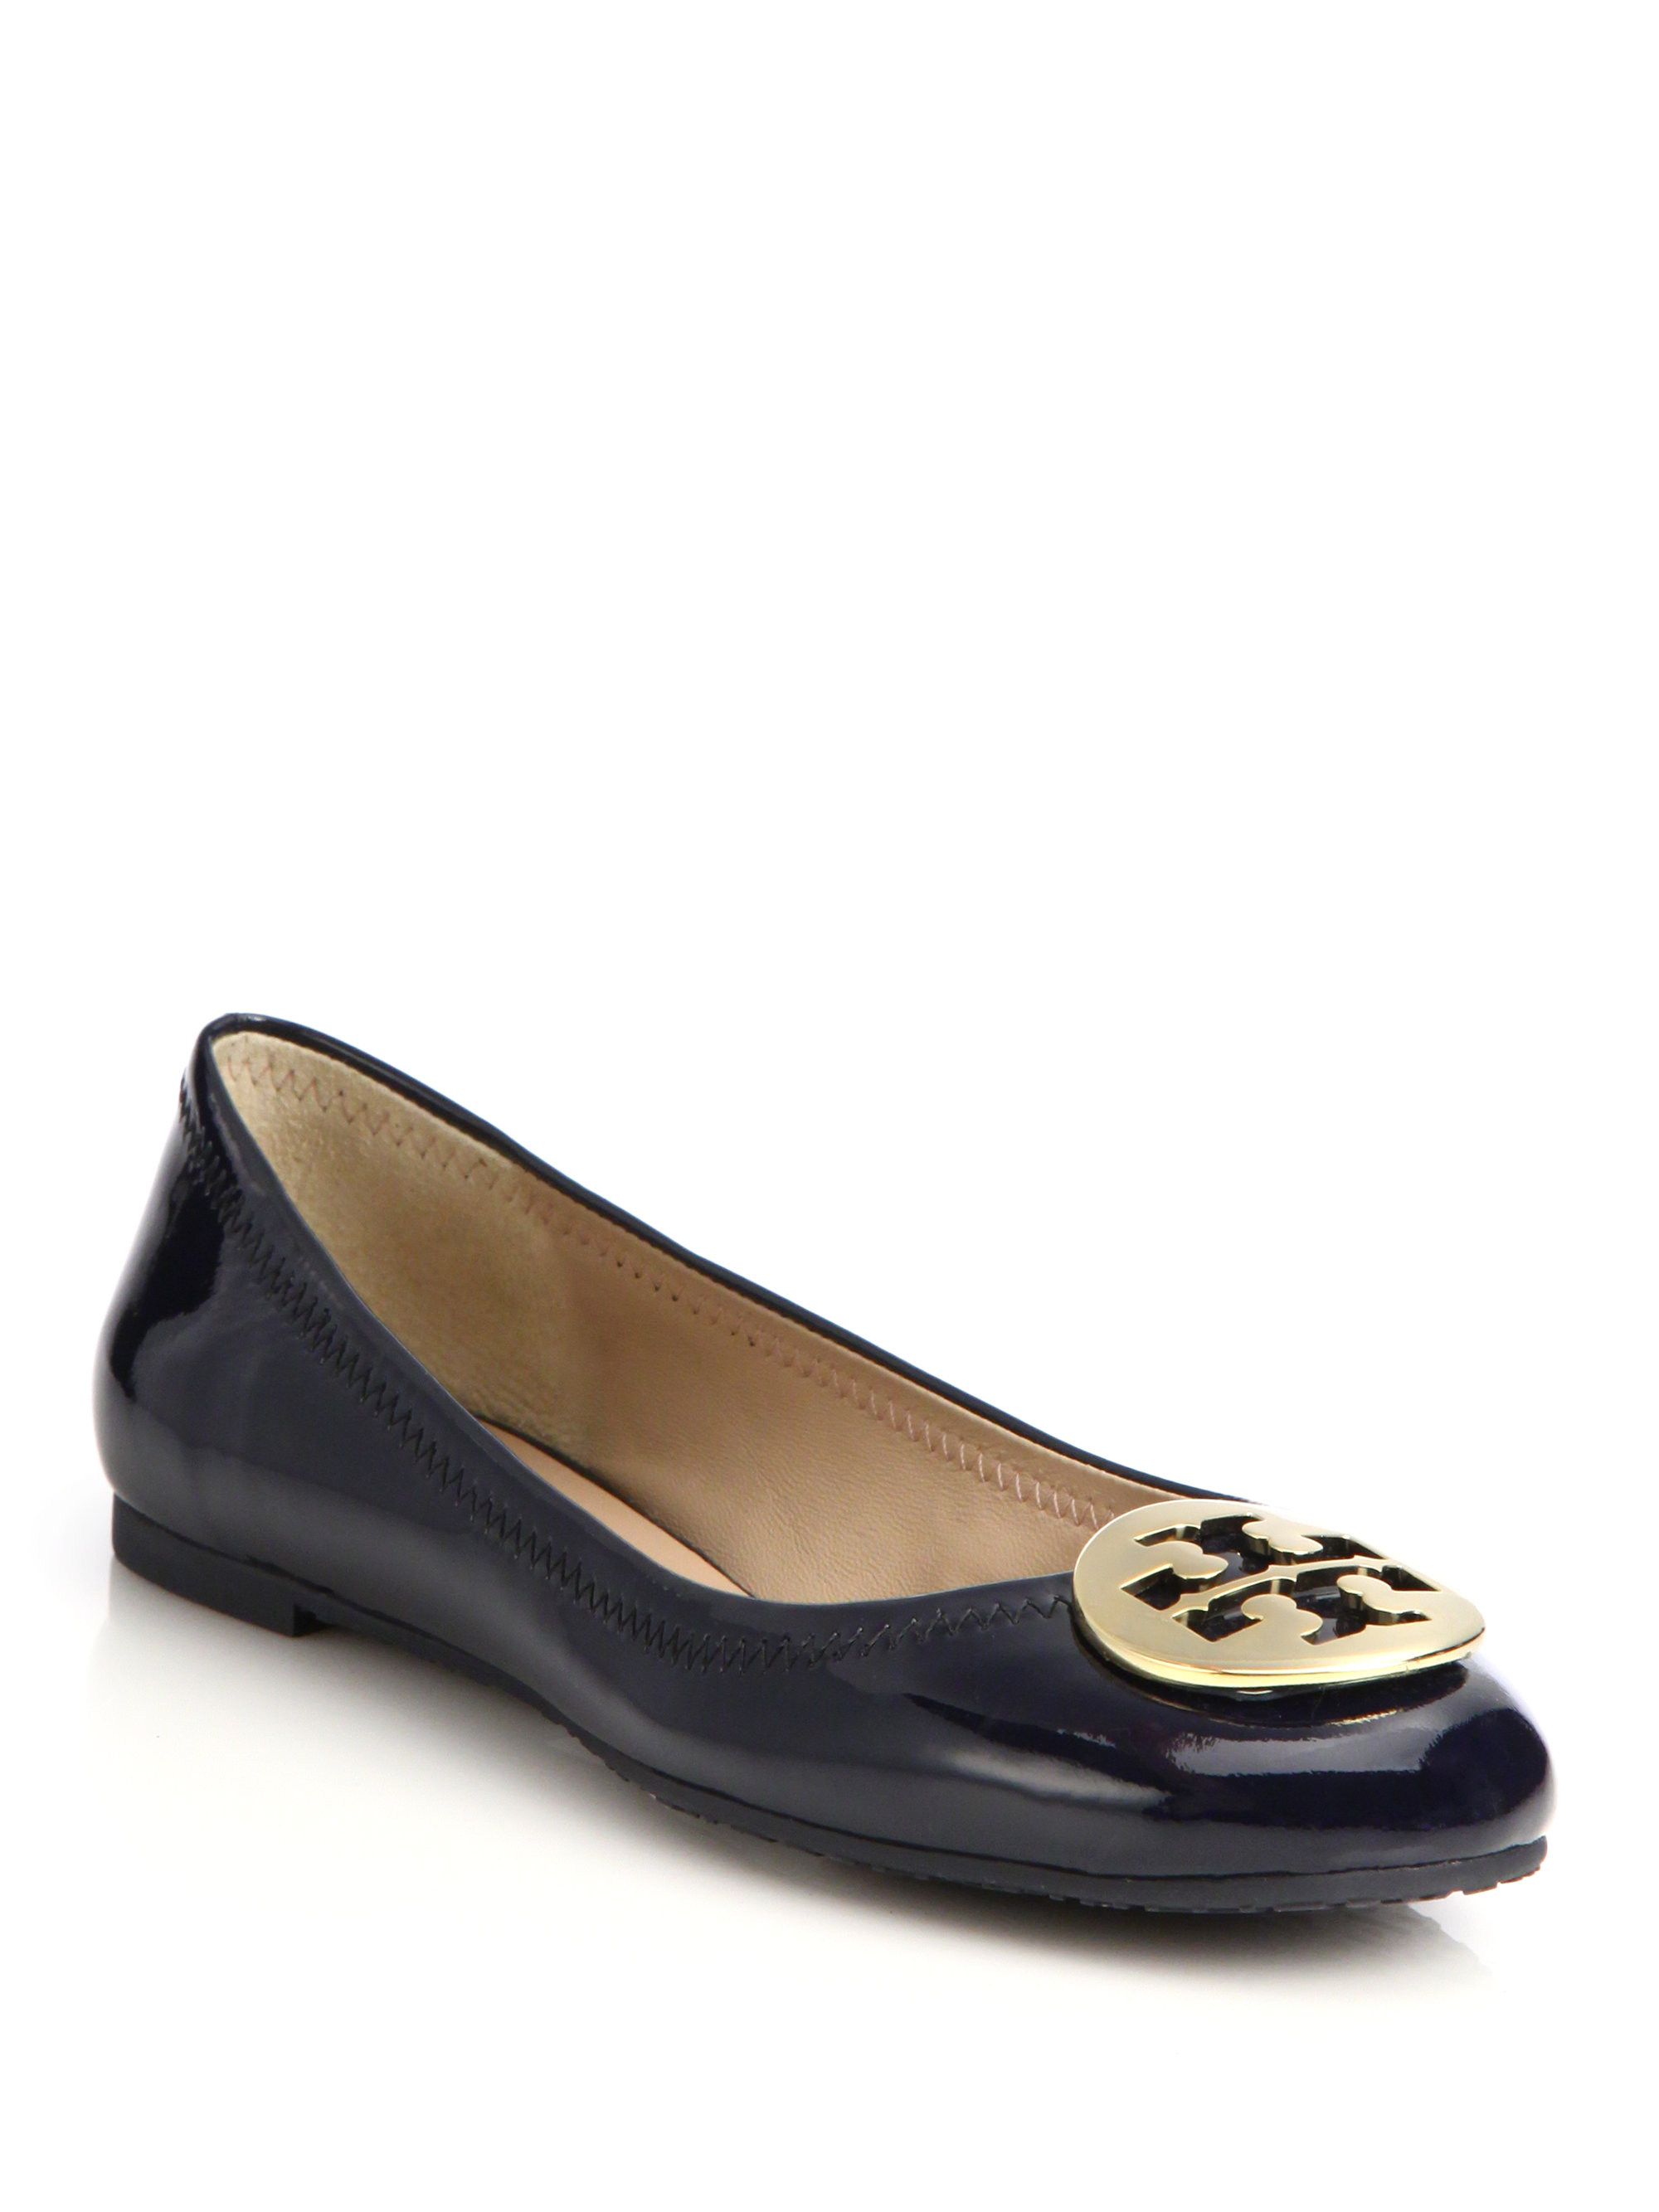 online for sale browse online Tory Burch Patent Leather Reva Flats cheap sale new arrival 3LQqG5fyp1